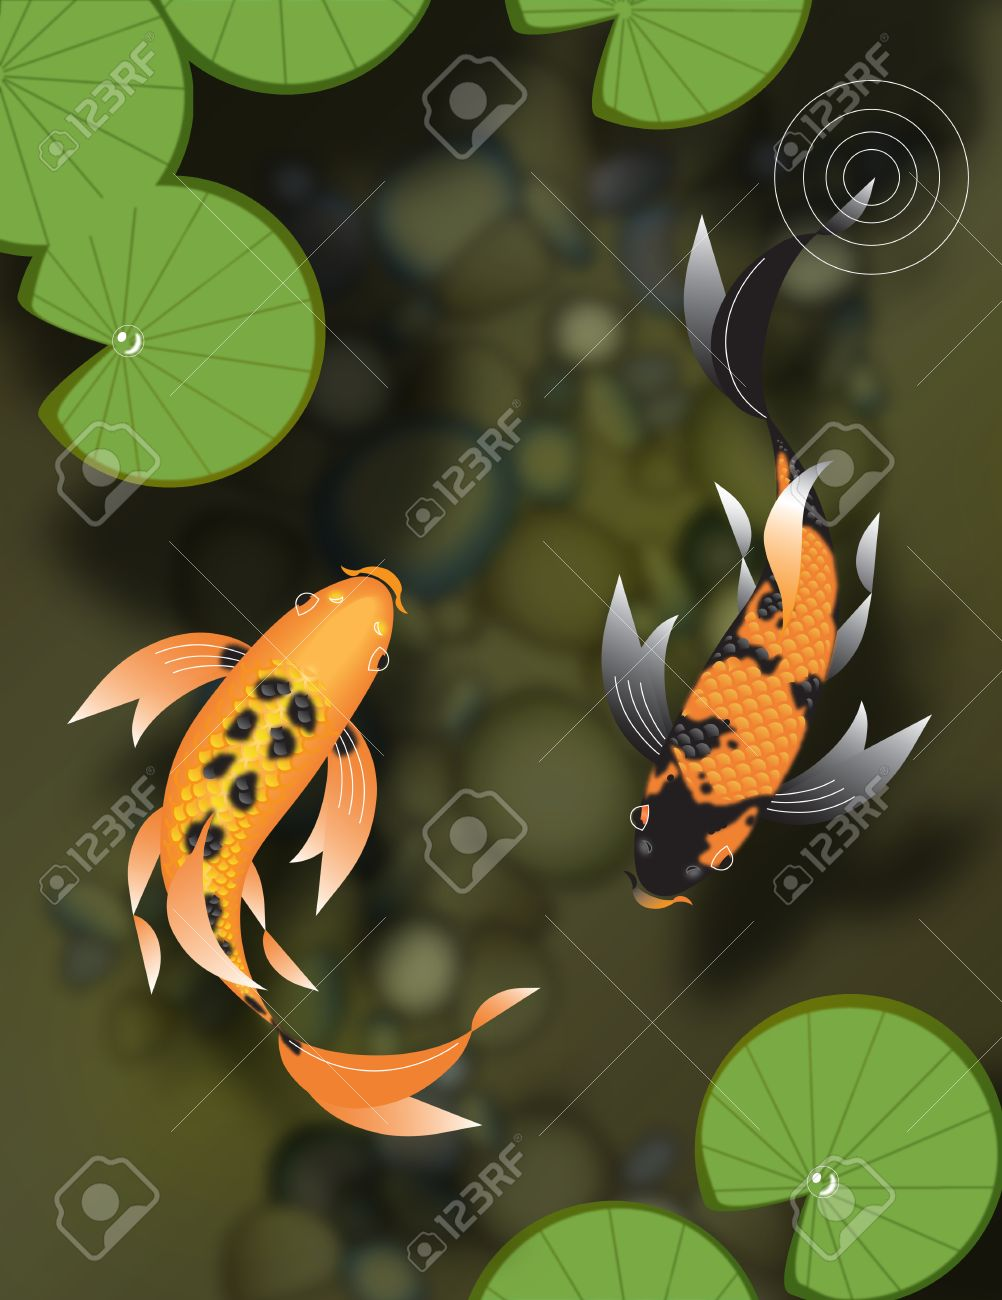 Stylized Butterfly Koi Fish Swimming In Pond With Lily Pads Stock Photo Picture And Royalty Free Image Image 24695295